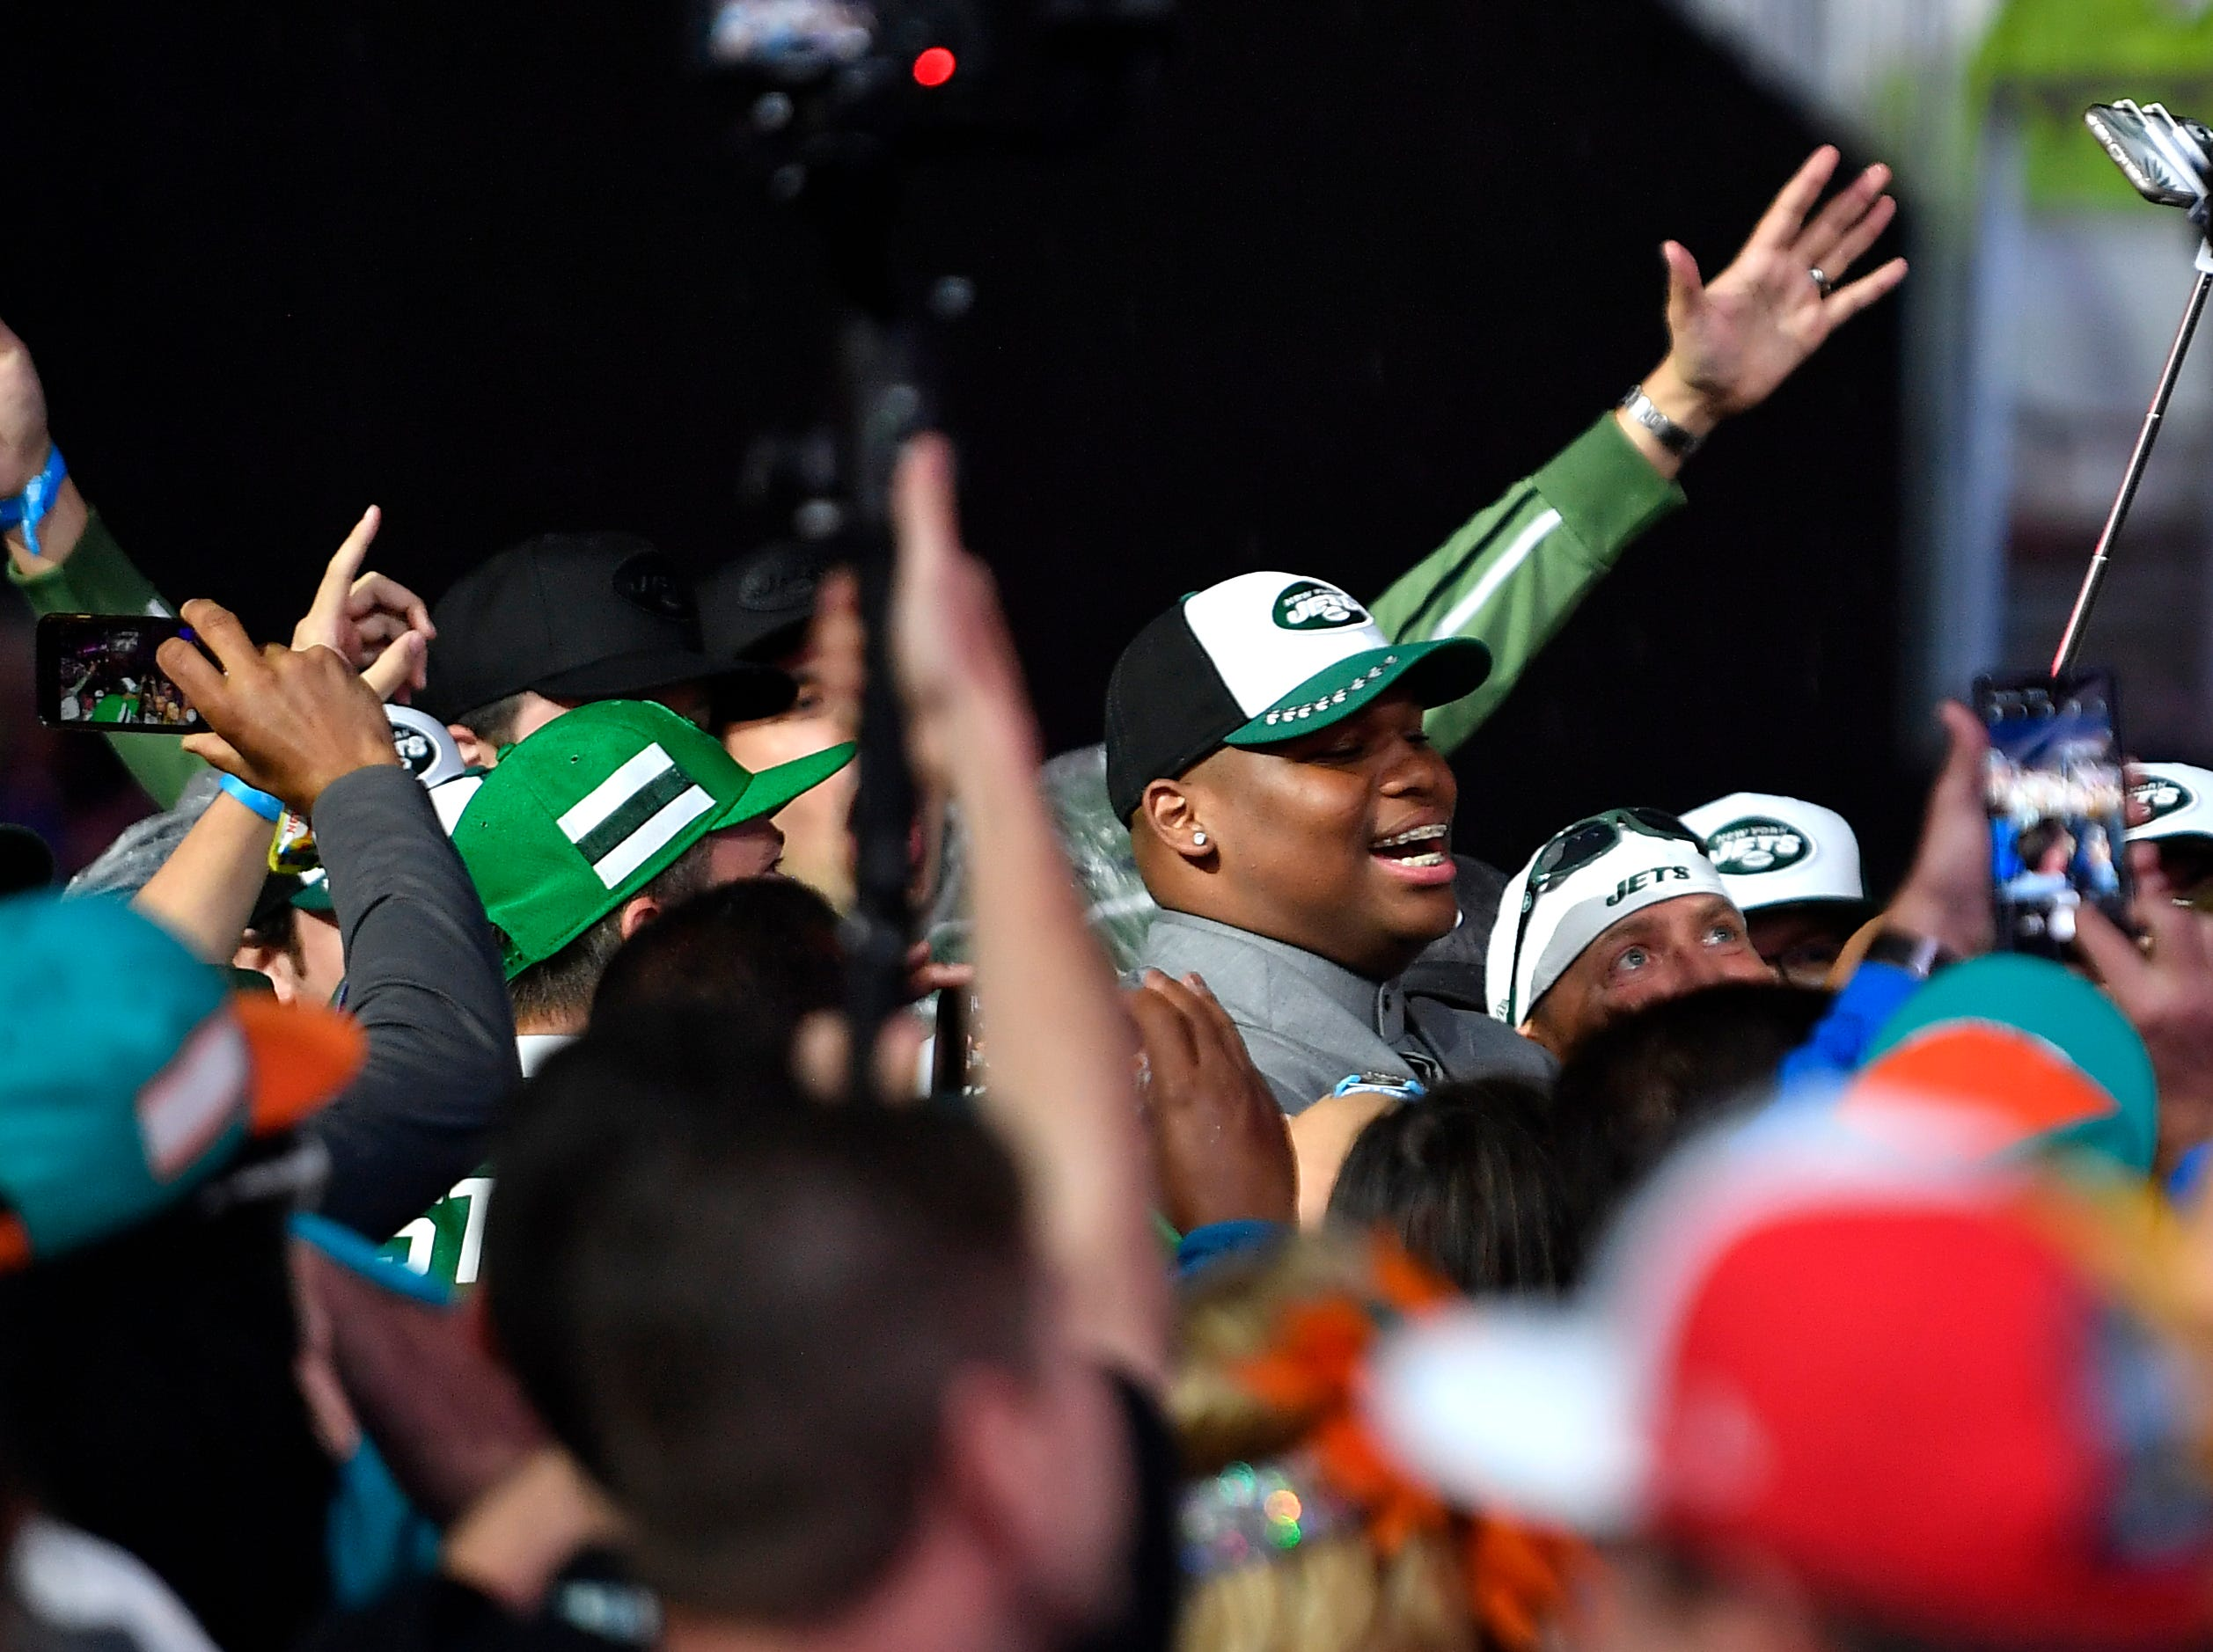 Quinnen WIlliams mingles with New York Jets fans after being picked during the first round of the NFL Draft Thursday, April 25, 2019, in Nashville, Tenn.